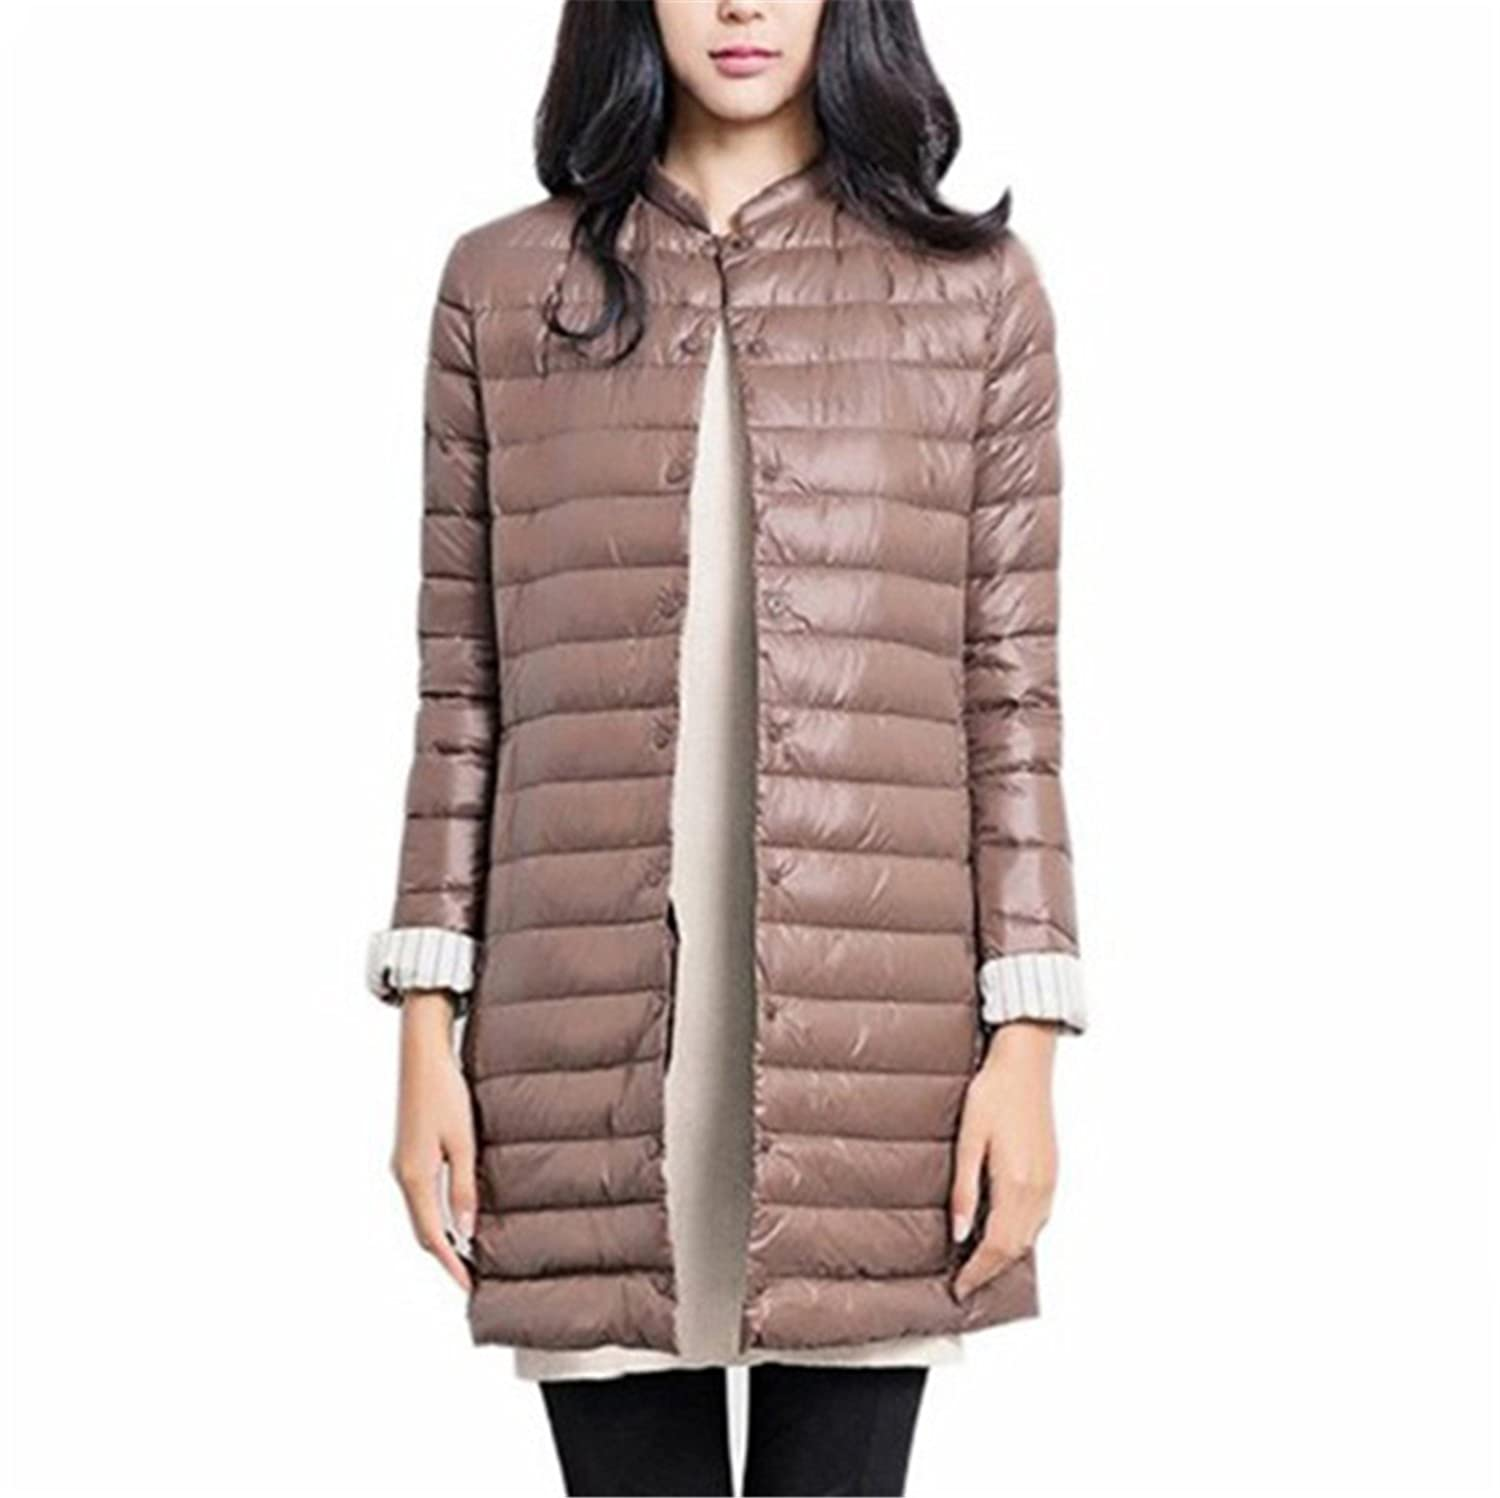 Dapengzhu 1PC Thin Down Jacket Winter Coat Women Winter Coat Women Long Coats Outerwear Parka Zang Qing XS at Amazon Womens Coats Shop